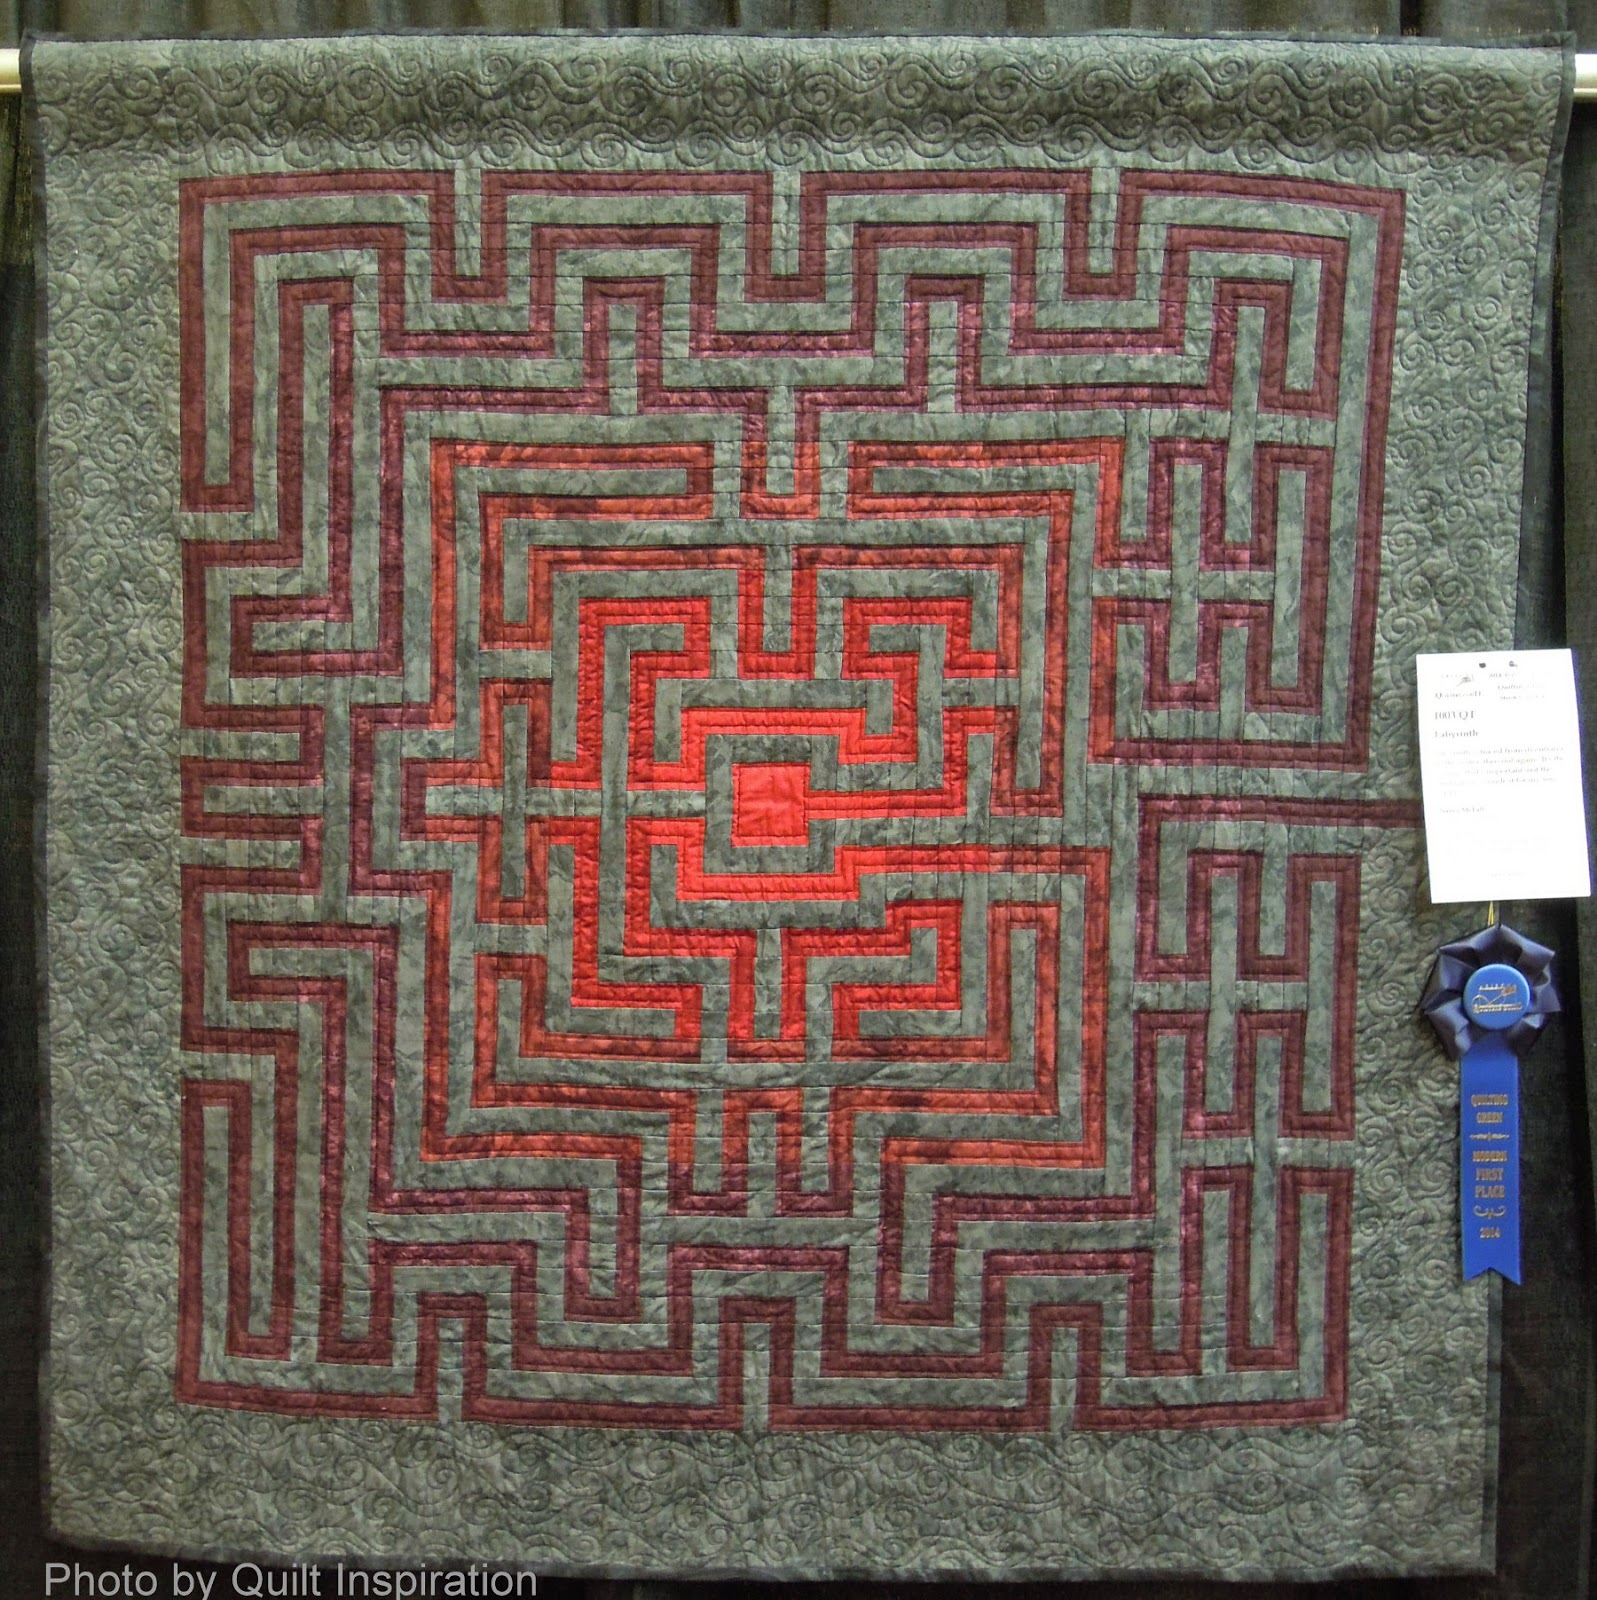 Quilt Inspiration Highlights Of The 2014 Arizona Quilters Guild